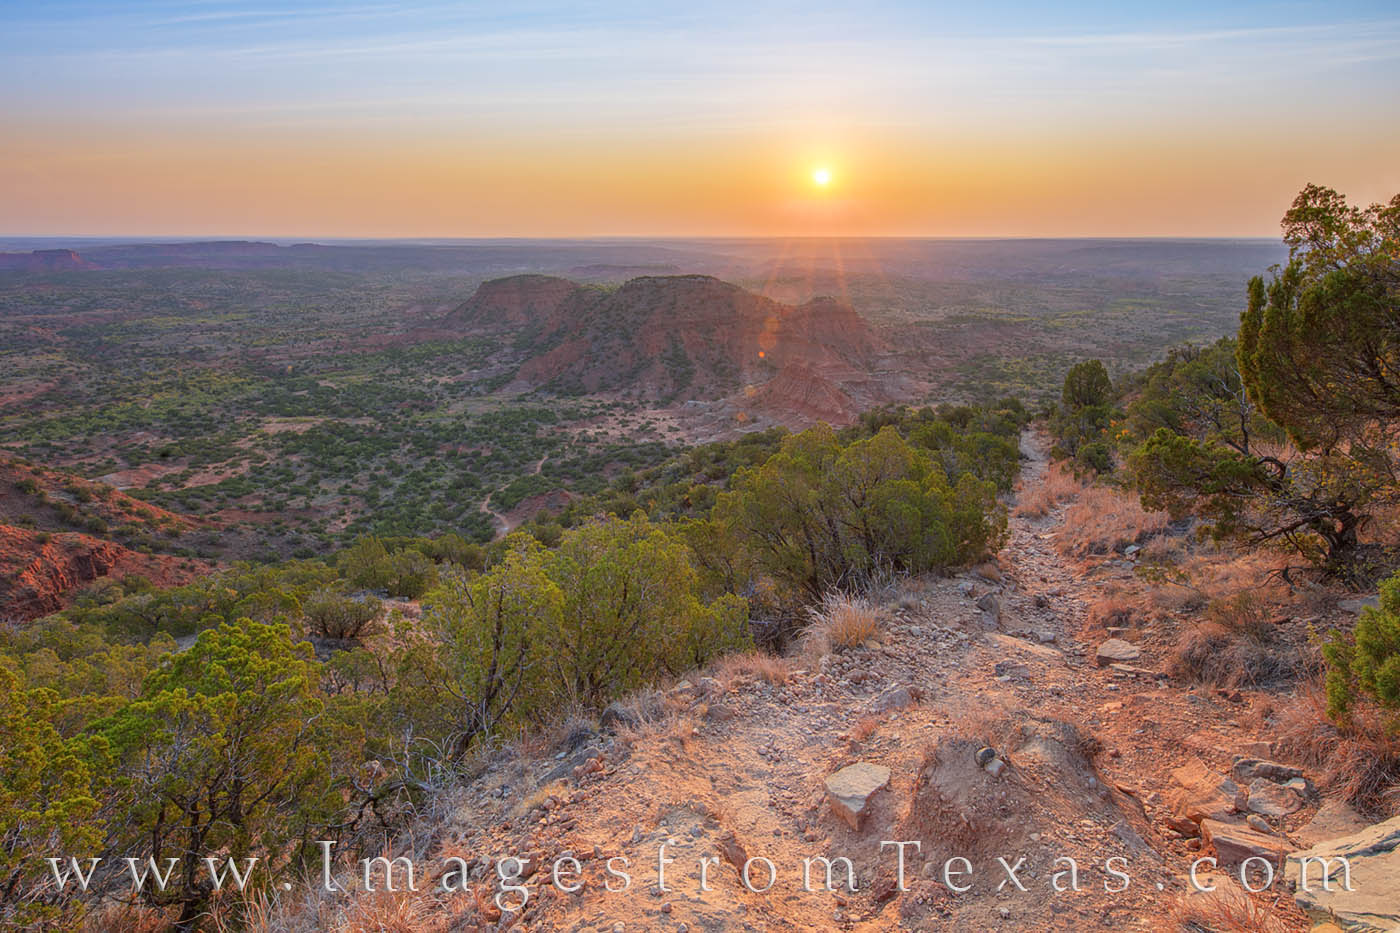 After a hike up in the dark and a few hours photographing the west Texas sunrise from Haynes Ridge in Caprock Canyons State Park...